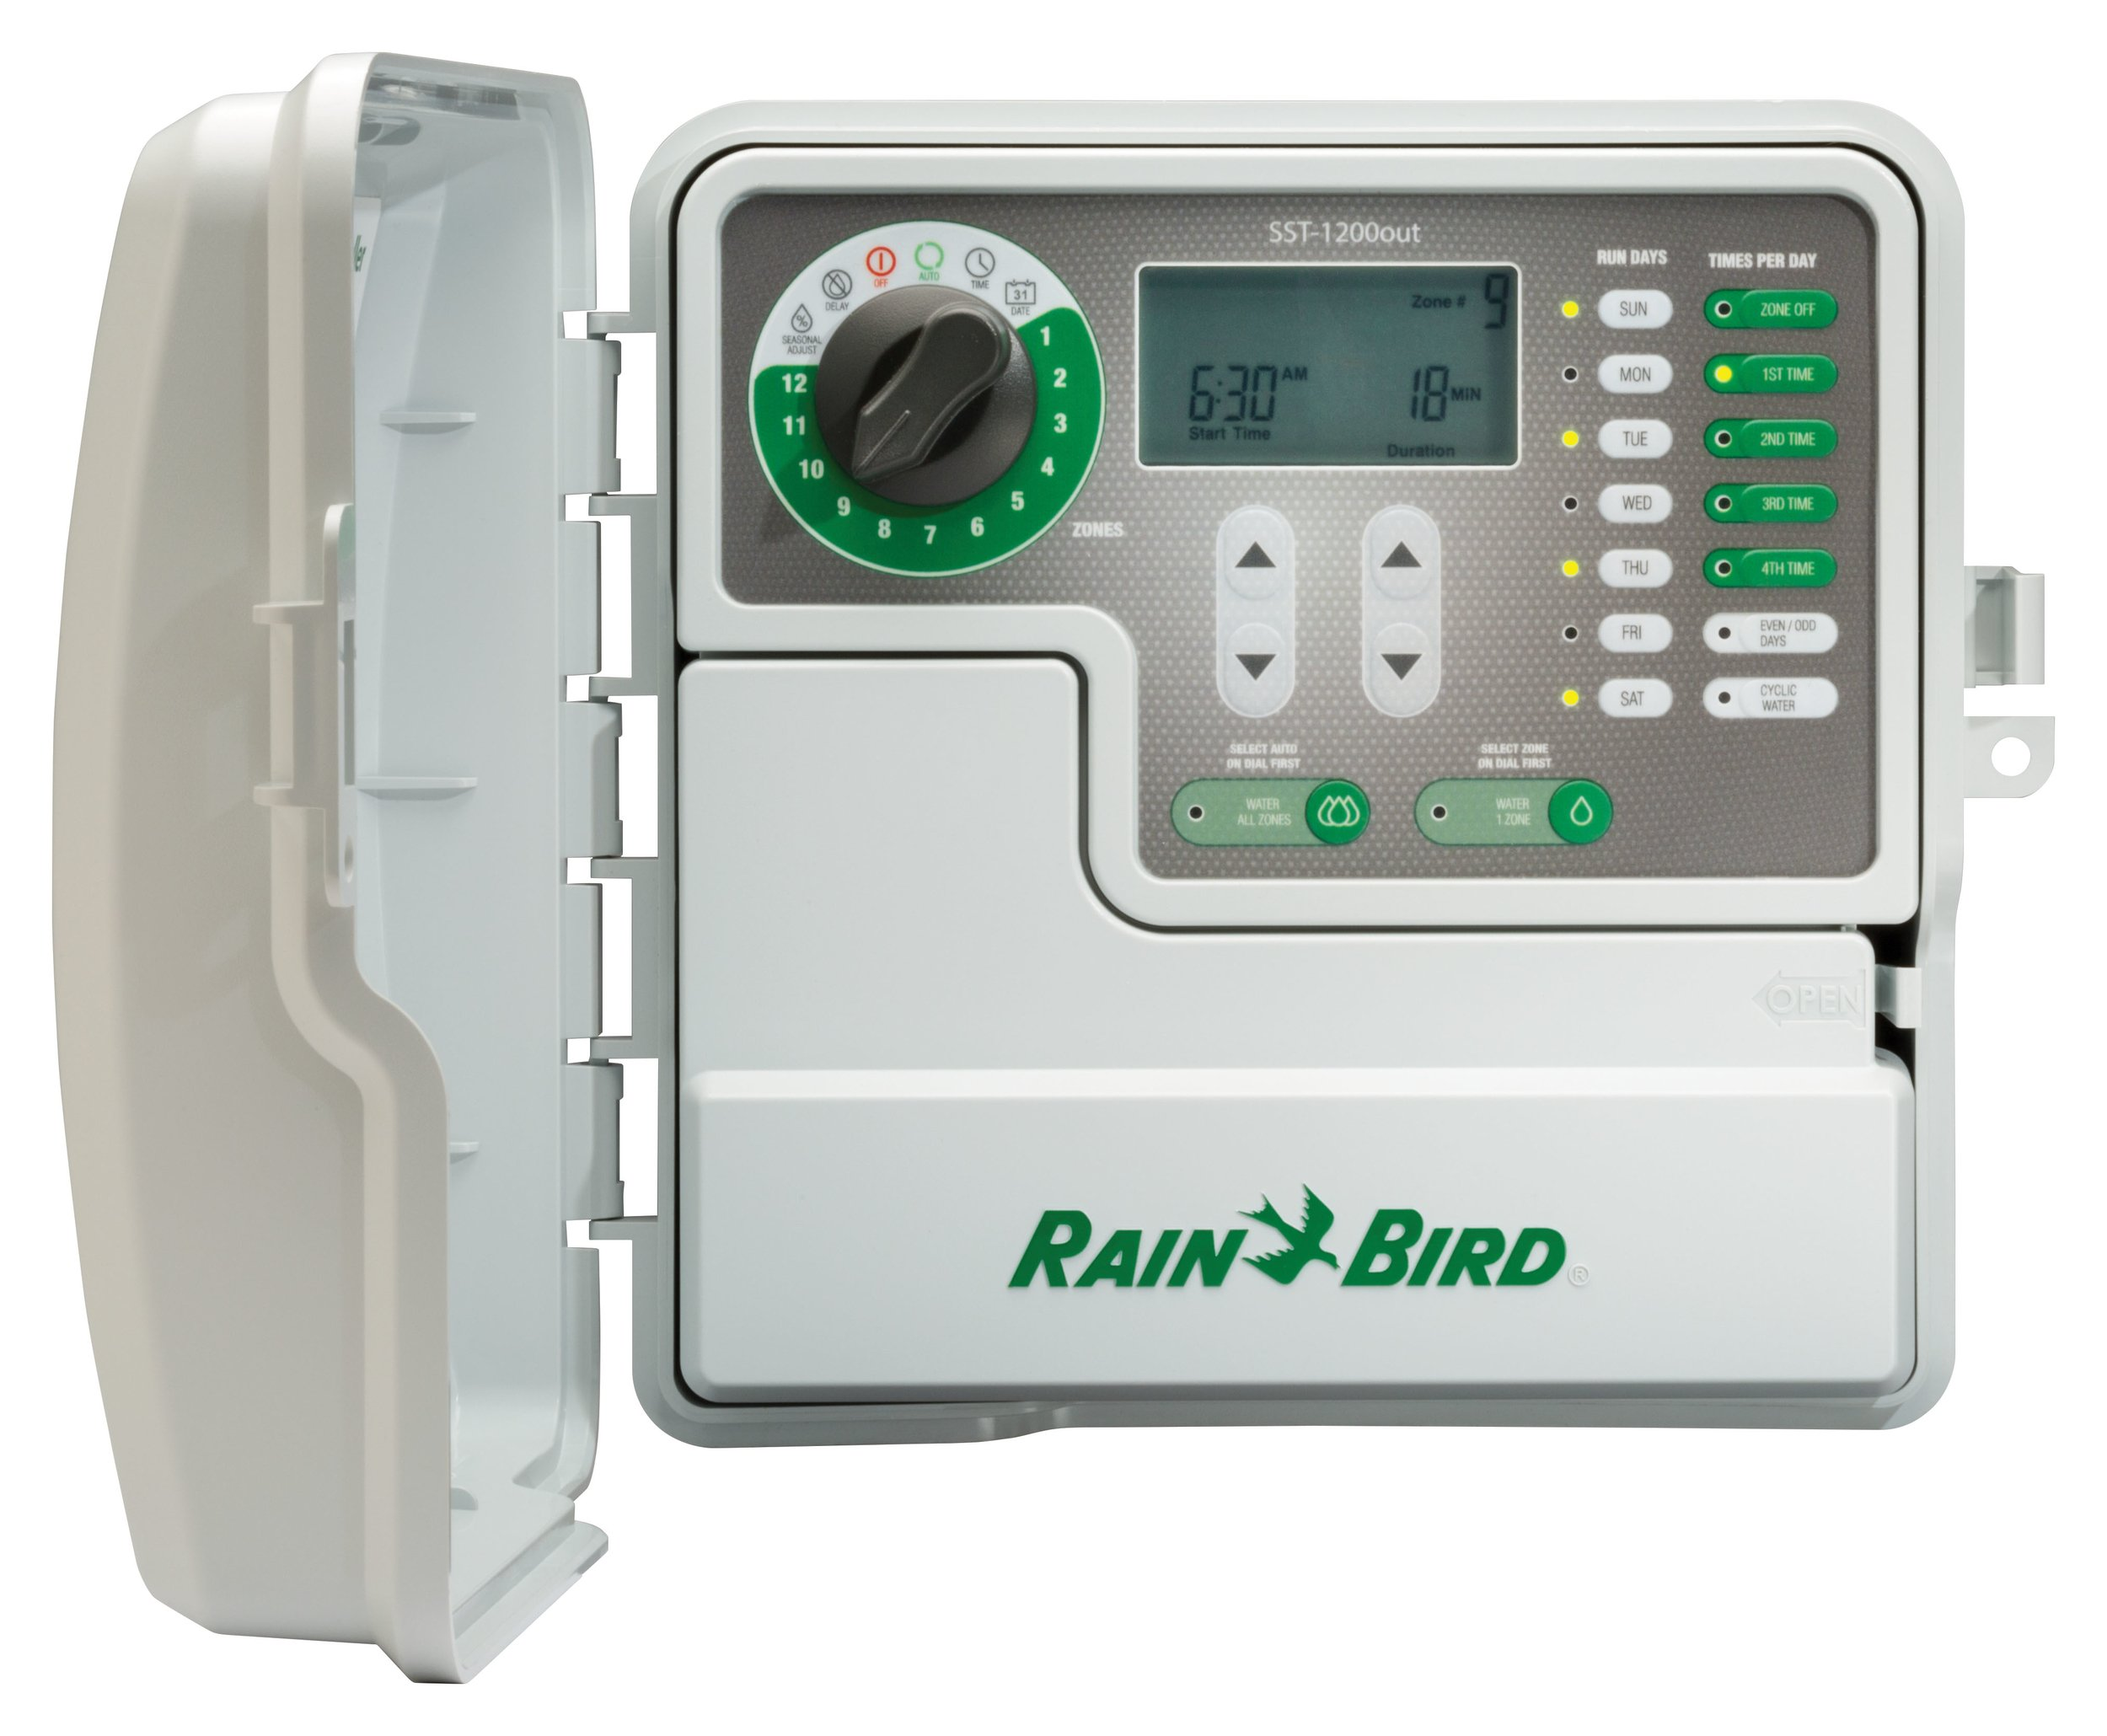 Rain Bird SST1200OUT Simple-To-Set Indoor/Outdoor Sprinkler/Irrigation Timer/Controller, 12-Zone/Station (this new/improved model replaces SST1200O)